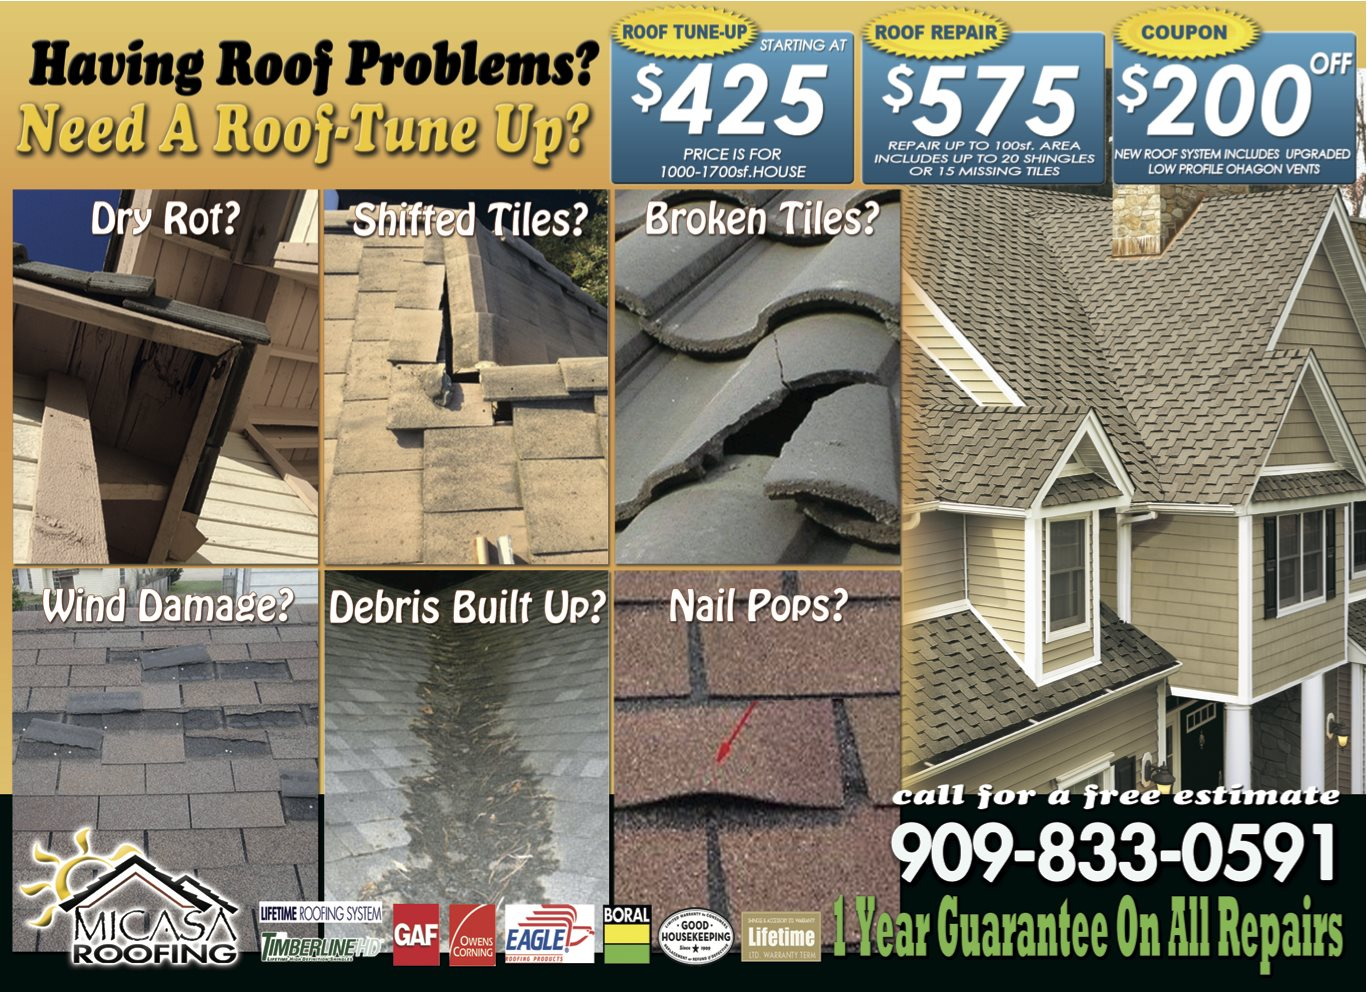 roofing_6x9_front-1.jpg